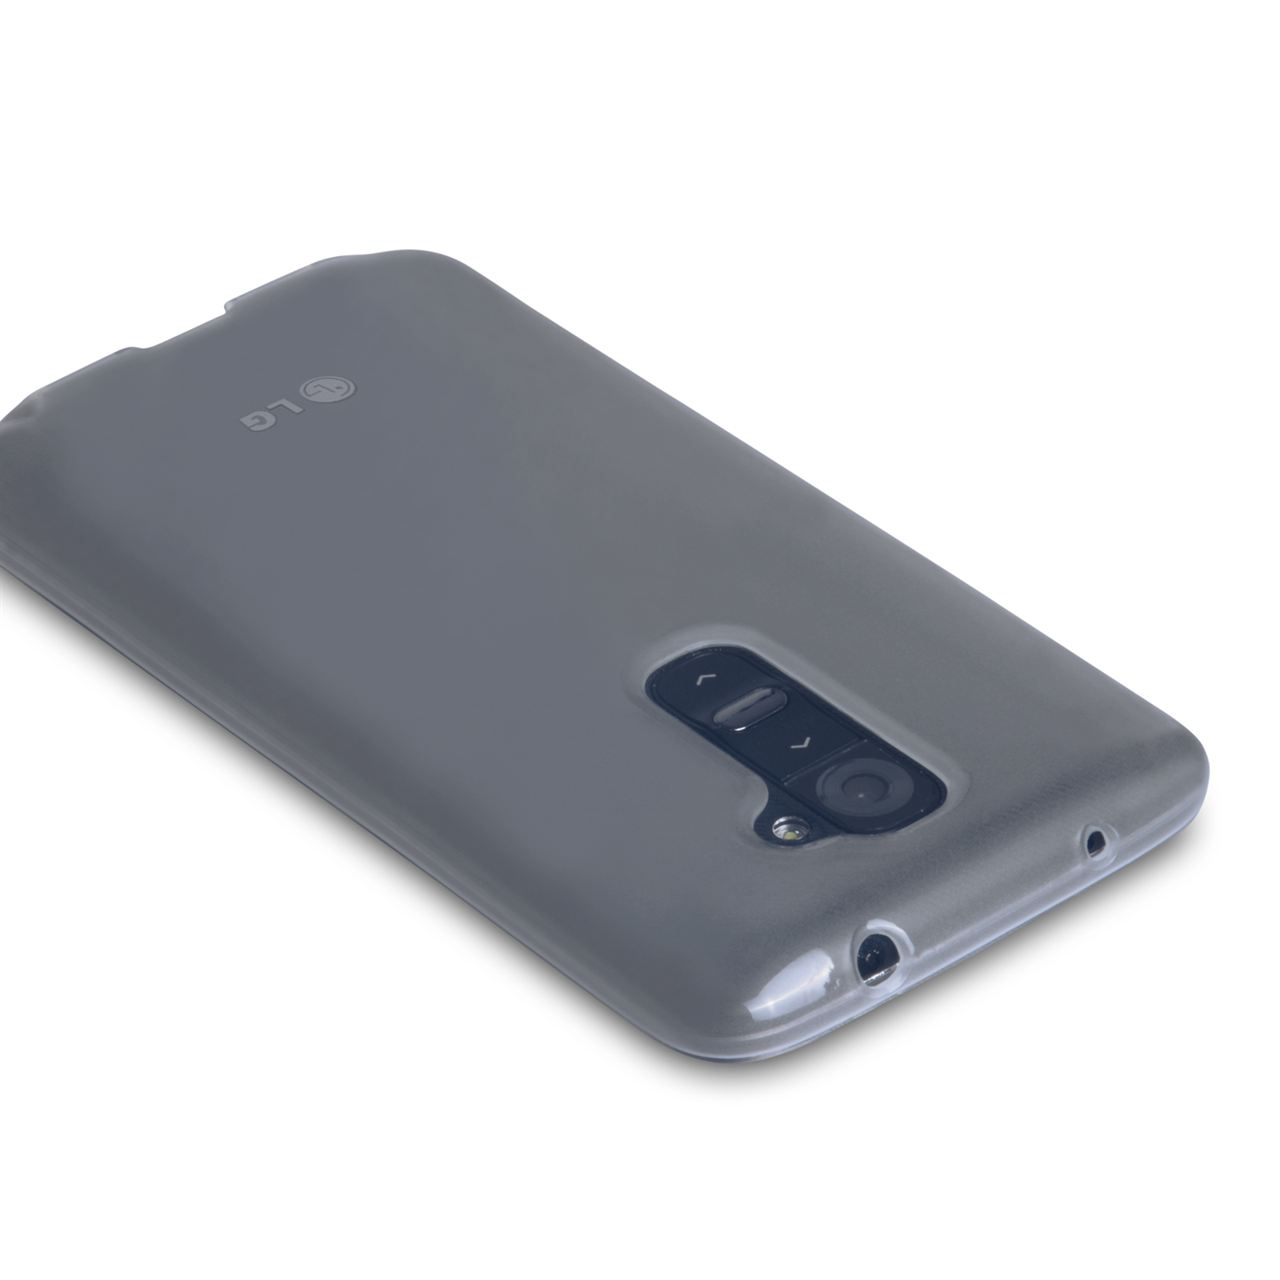 YouSave Accessories LG G2 TPU Gel Case - Clear